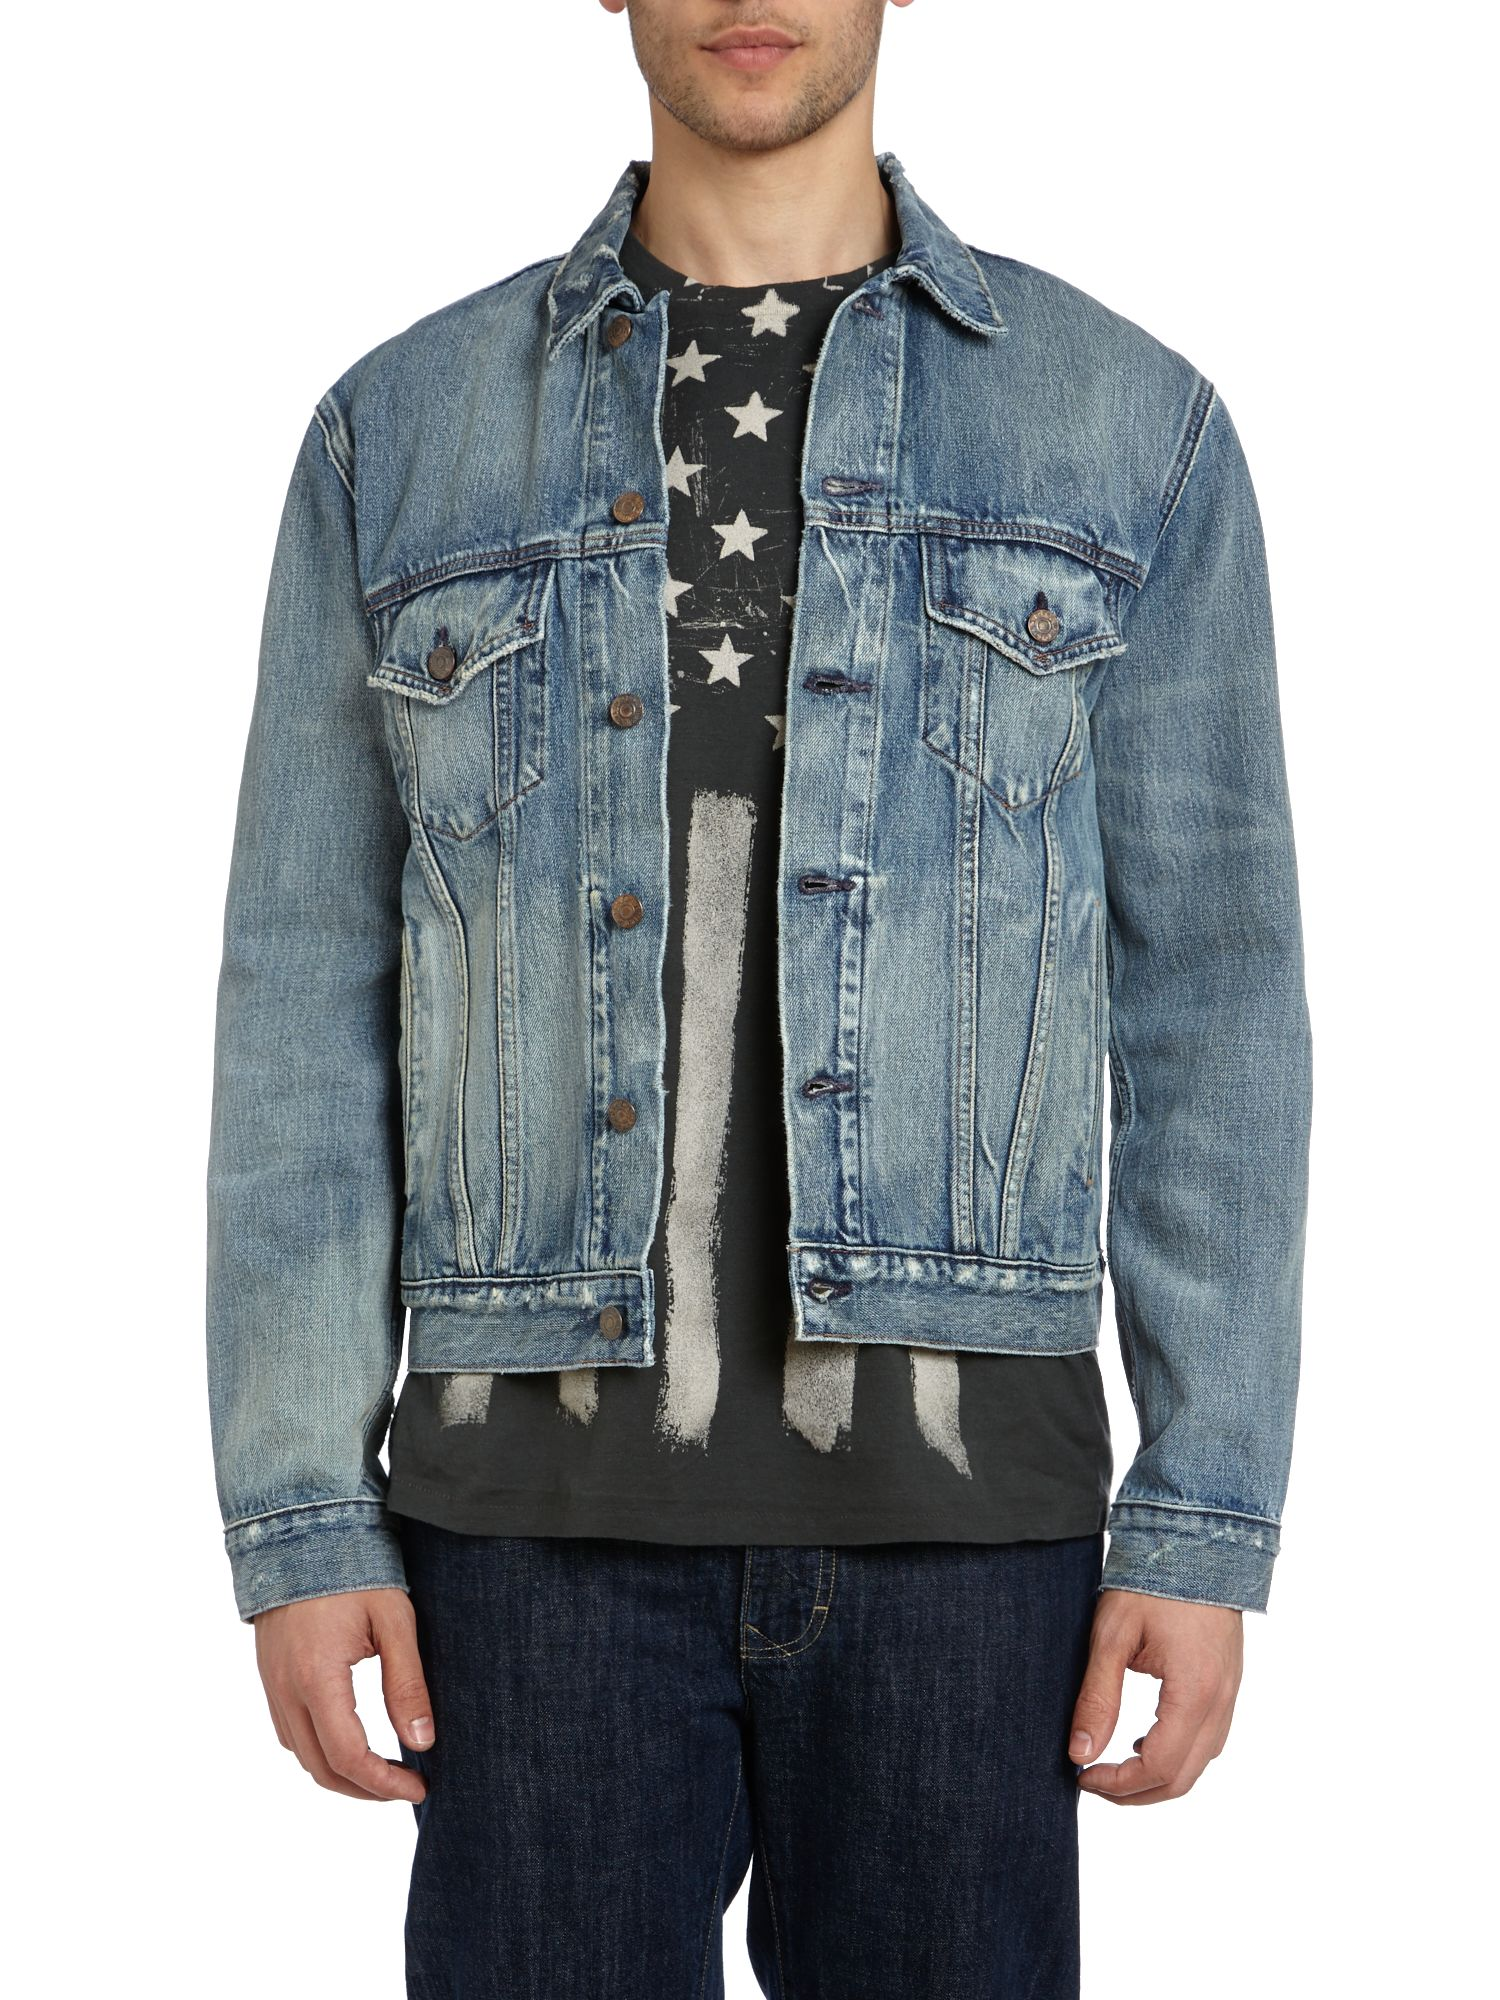 Trucker denim union jacket